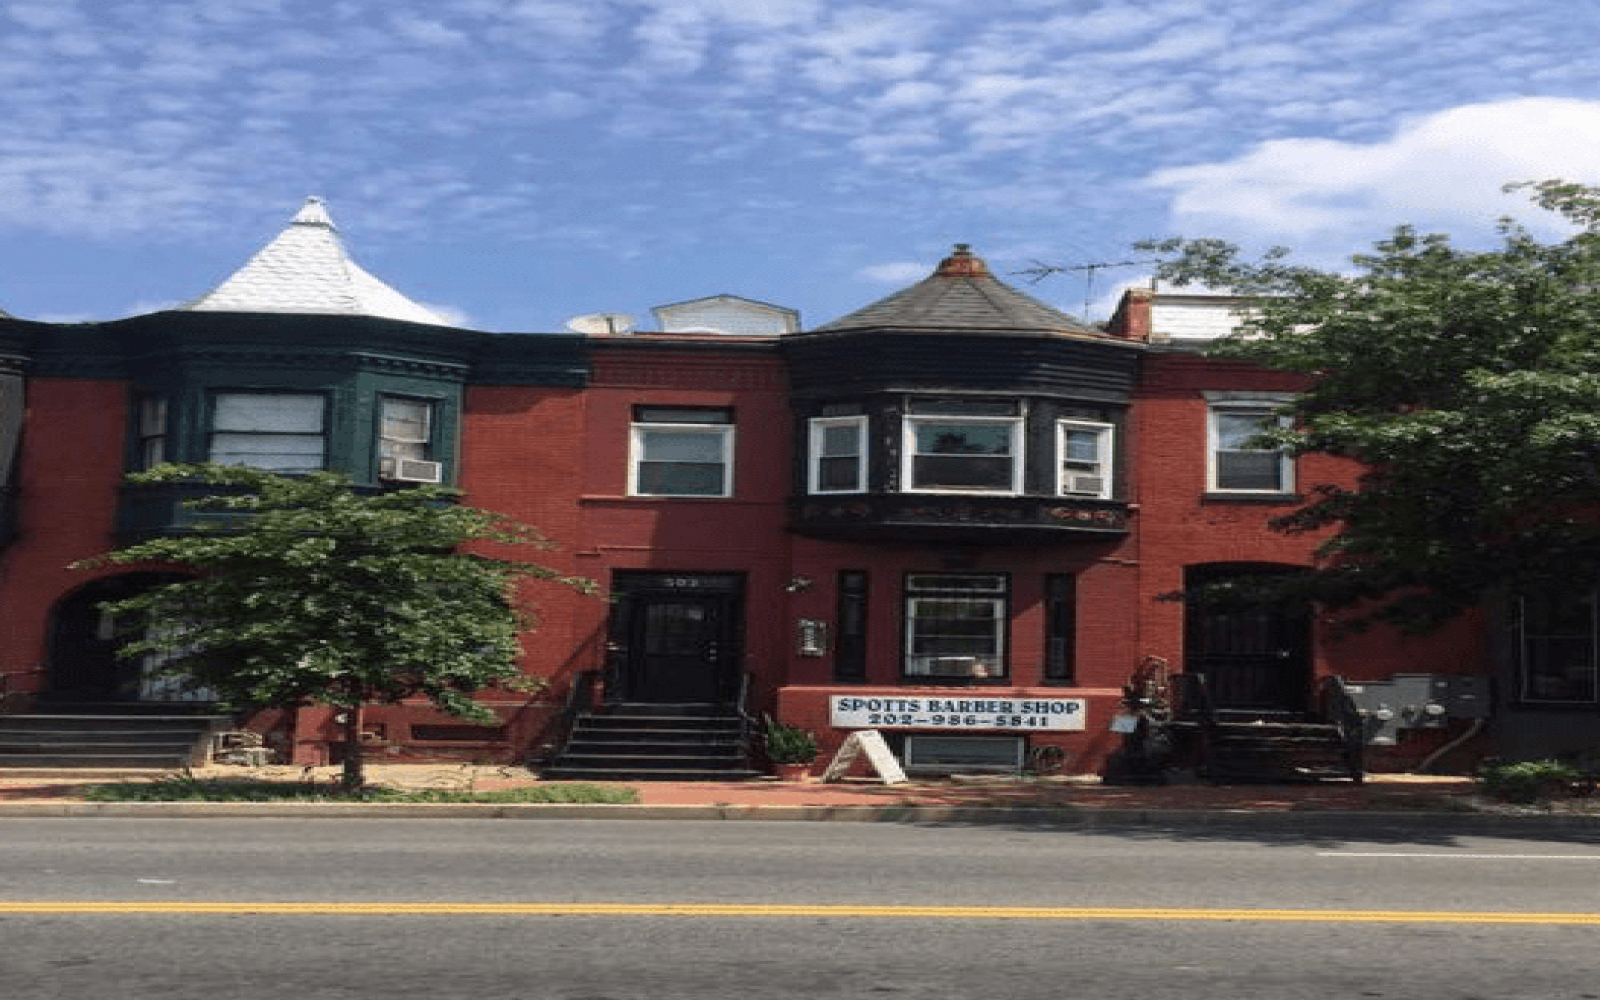 503 Florida Ave NW,Washington,District Of Columbia 20001,1 Bedroom Bedrooms,1 BathroomBathrooms,Apartment,Florida Ave,1095